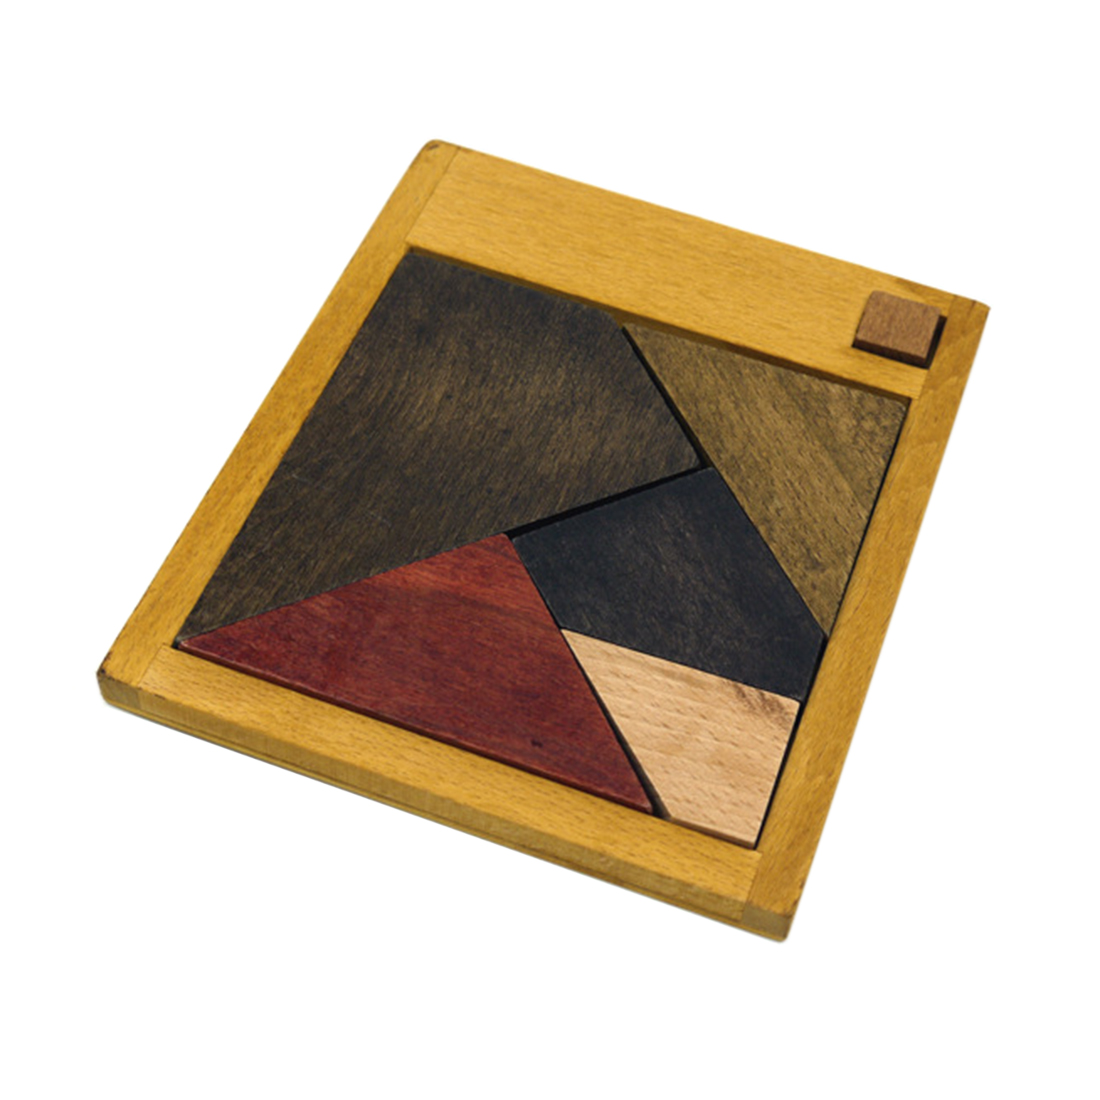 Three Types Tangram 6-Piece Wooden Puzzle Game Magic Brain Teaser Intelligence Game for Adult Playing Braining Training Kits